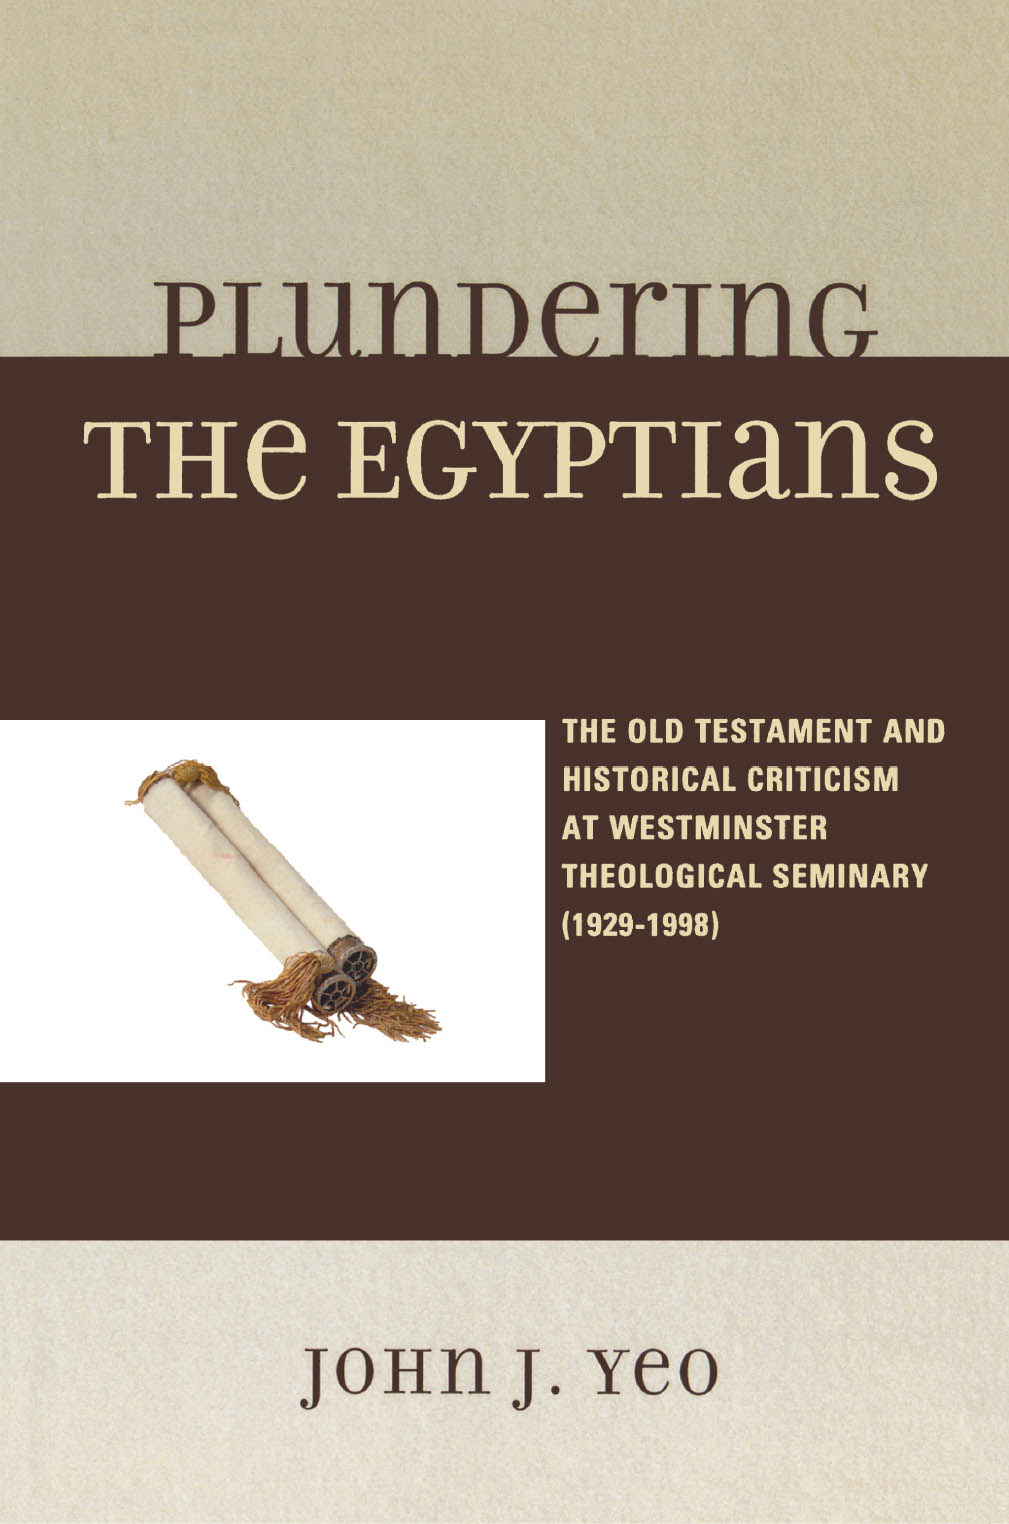 Plundering the Egyptians The Old Testament and Historical Criticism at Westminster Theological Seminary (1929-1998)